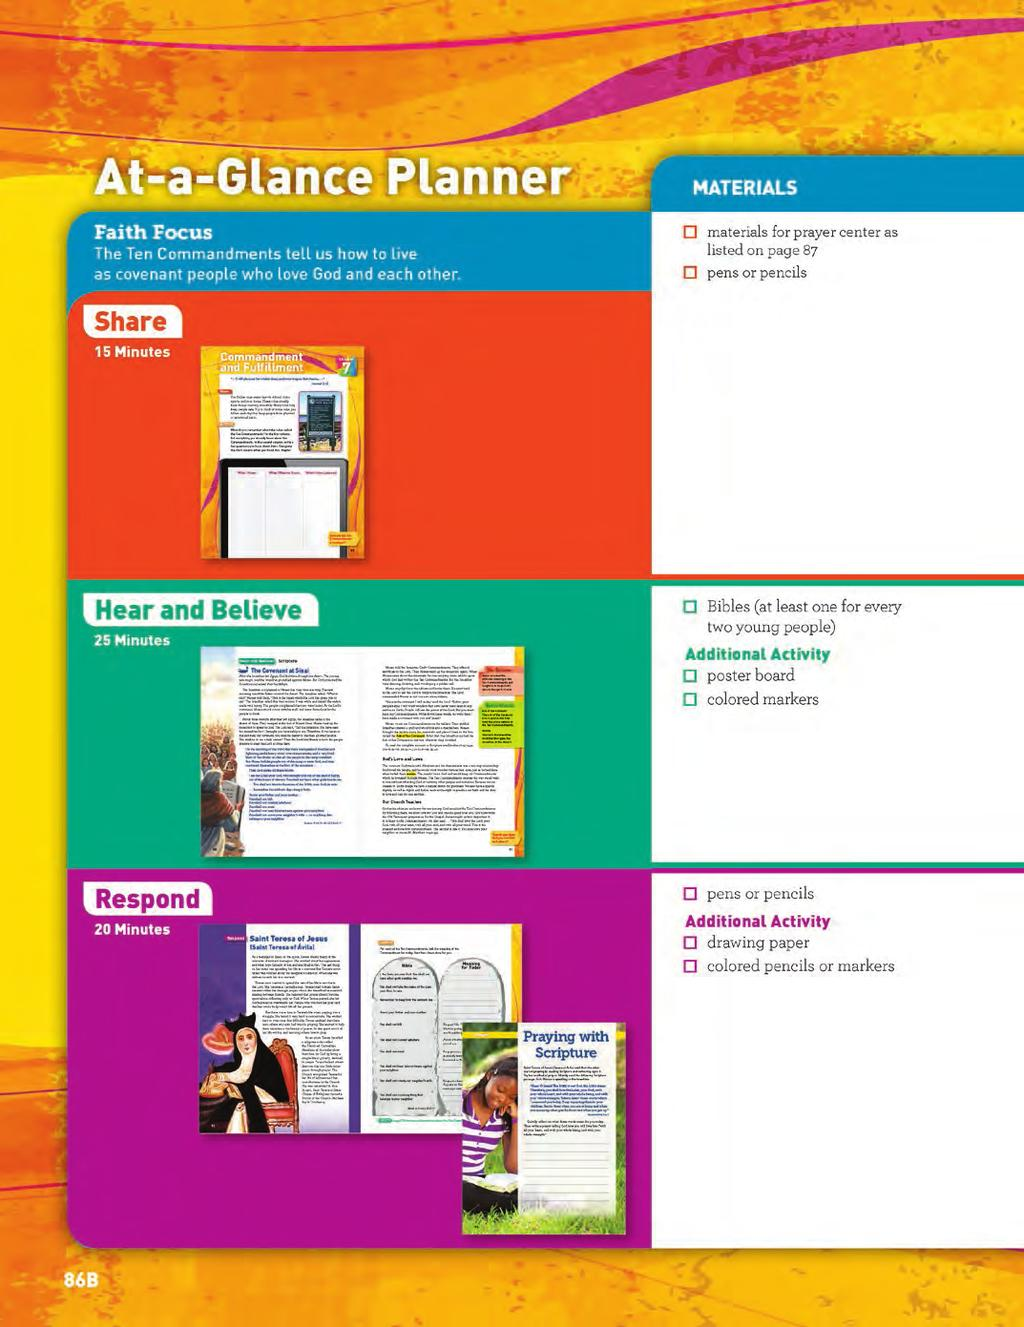 Grade 6 Catechist Guide At-a-Glance Planner AT-A-GLANCE PLANNER The At-a-Glance Planner presents an overview of the